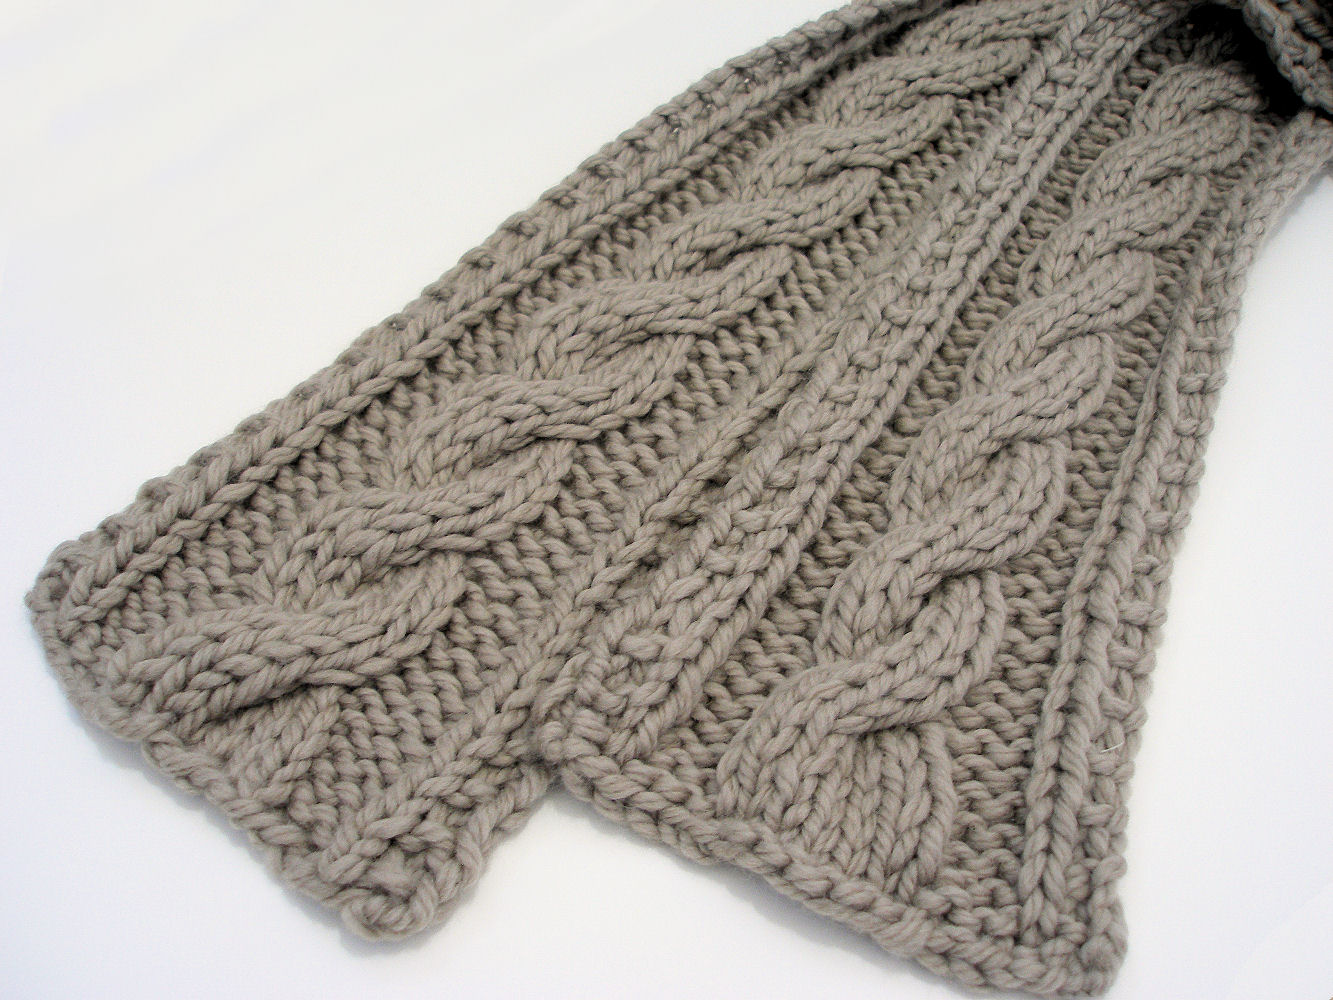 pattern It is a pattern from Knitting Crochet Childrens Scarf Crochet Children's Scarf Patterns